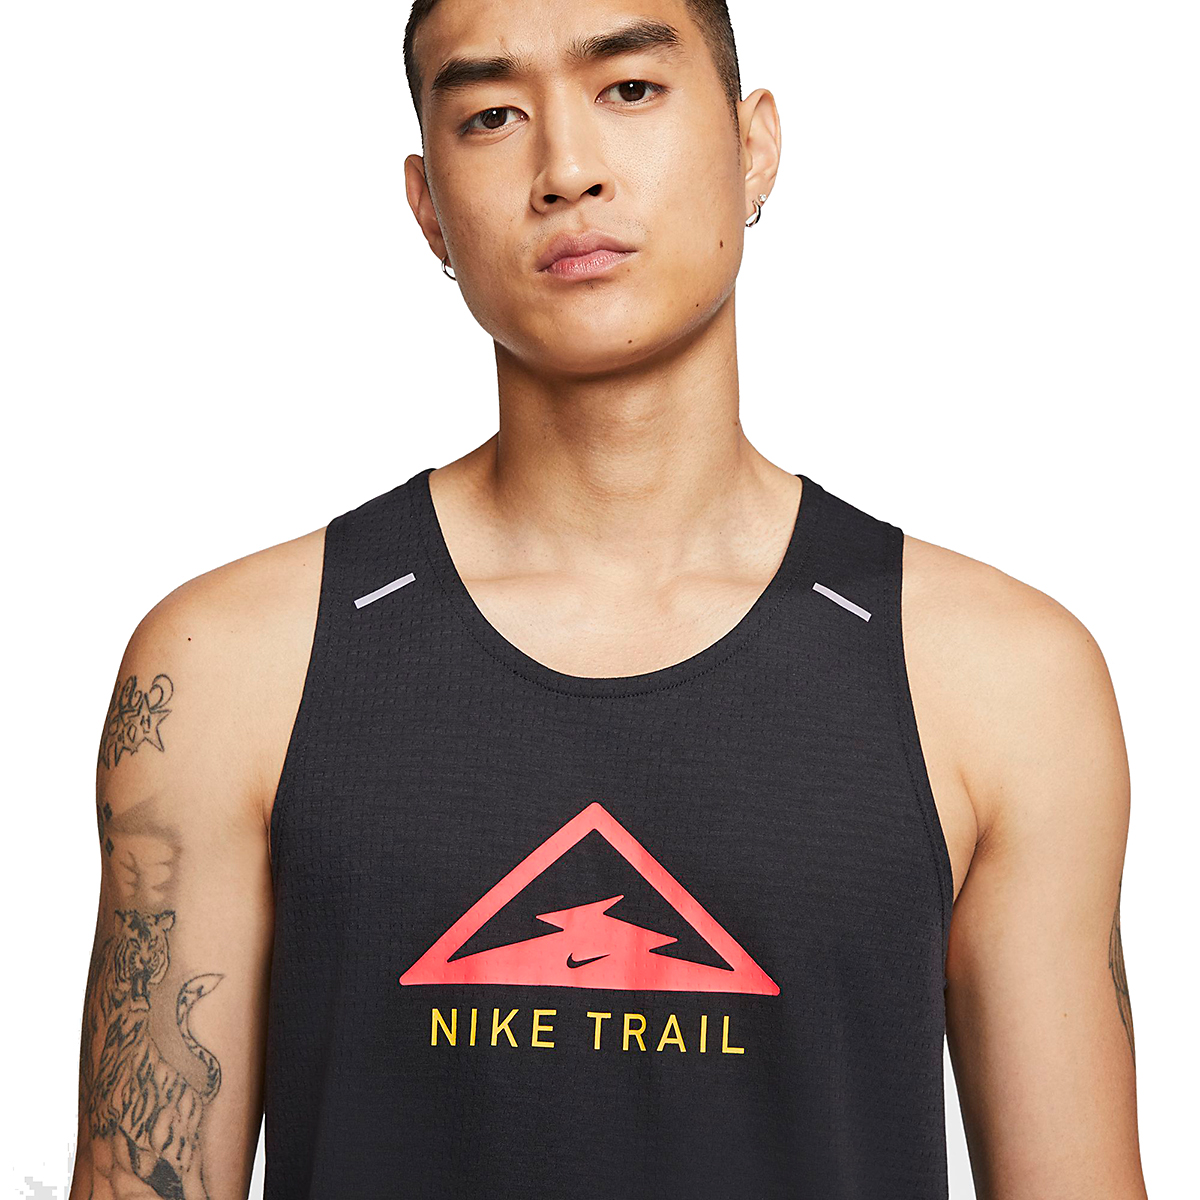 Men's Nike Rise 365 Trail Running Tank - Color: Black/Laser Crimson - Size: S, Black/Laser Crimson, large, image 3